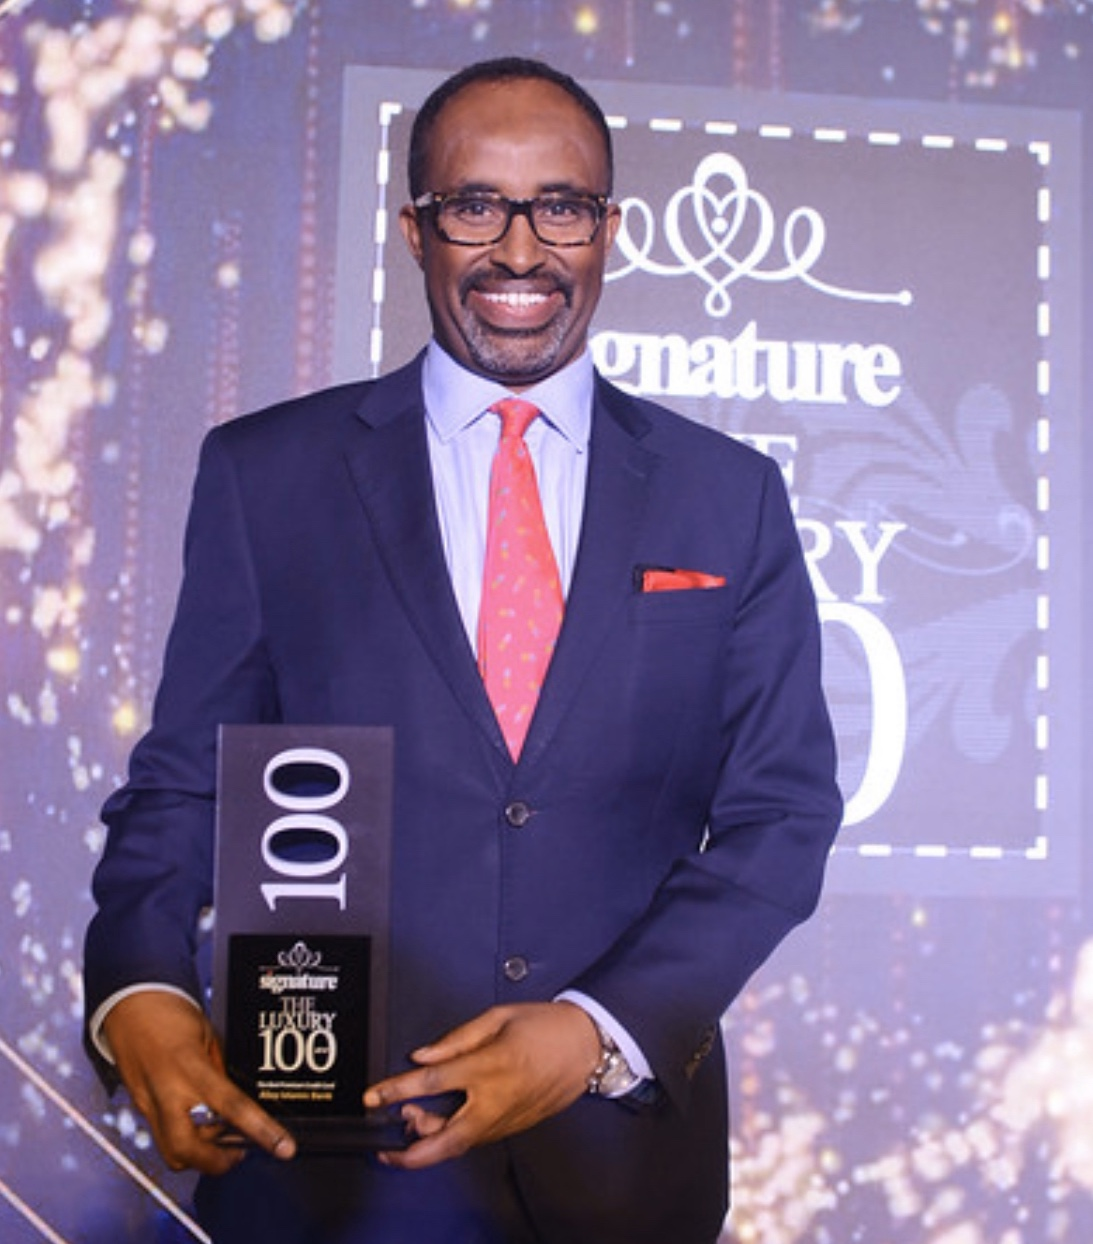 ALIZZ ISLAMIC BANK WINS 'BEST PREMIUM CREDIT CARD' AT THE SIGNATURE LUXURY 100 AWARDS